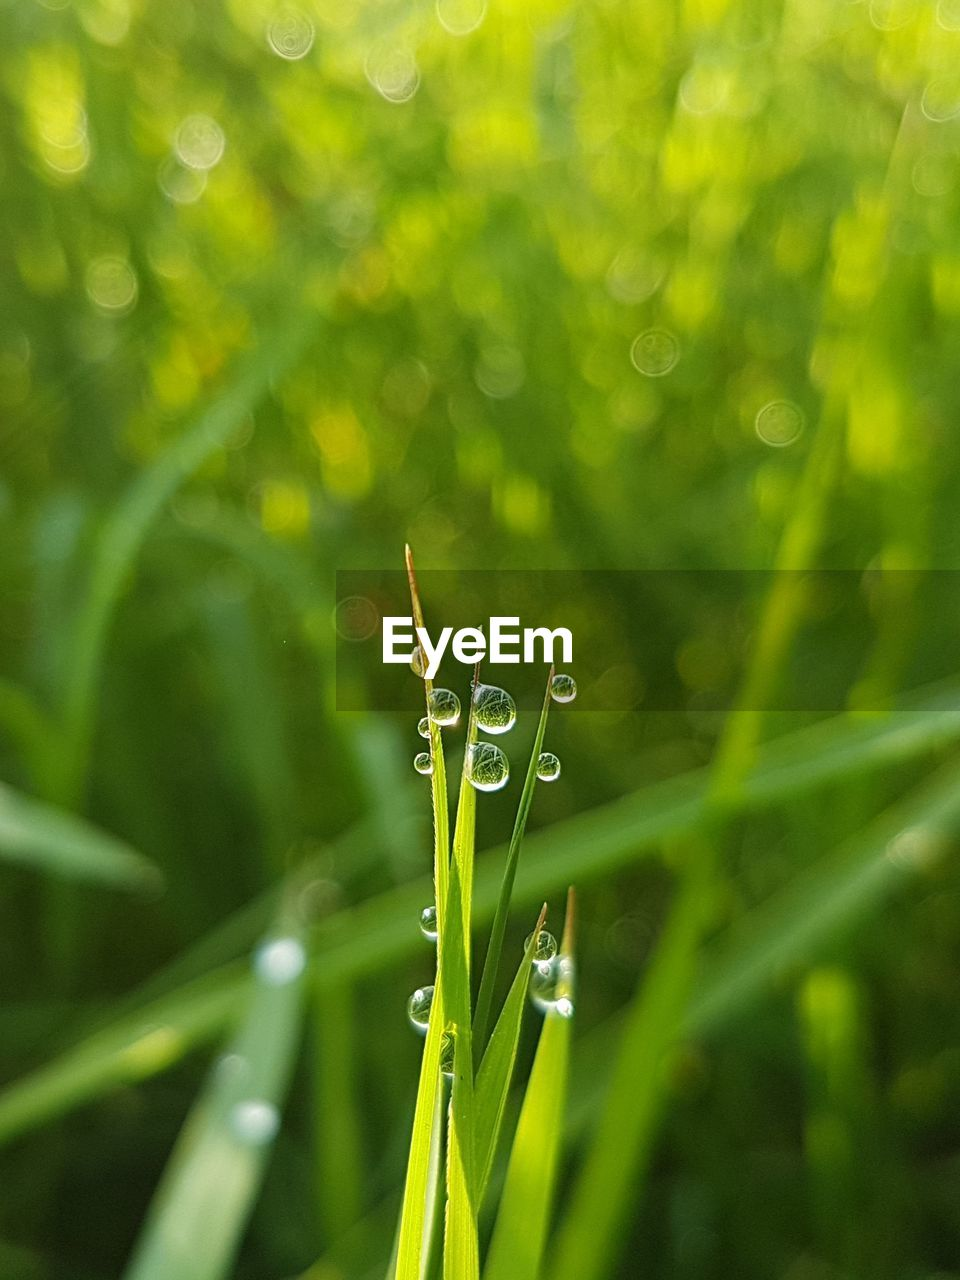 green color, growth, nature, drop, close-up, plant, focus on foreground, beauty in nature, outdoors, day, grass, fragility, no people, freshness, wet, water